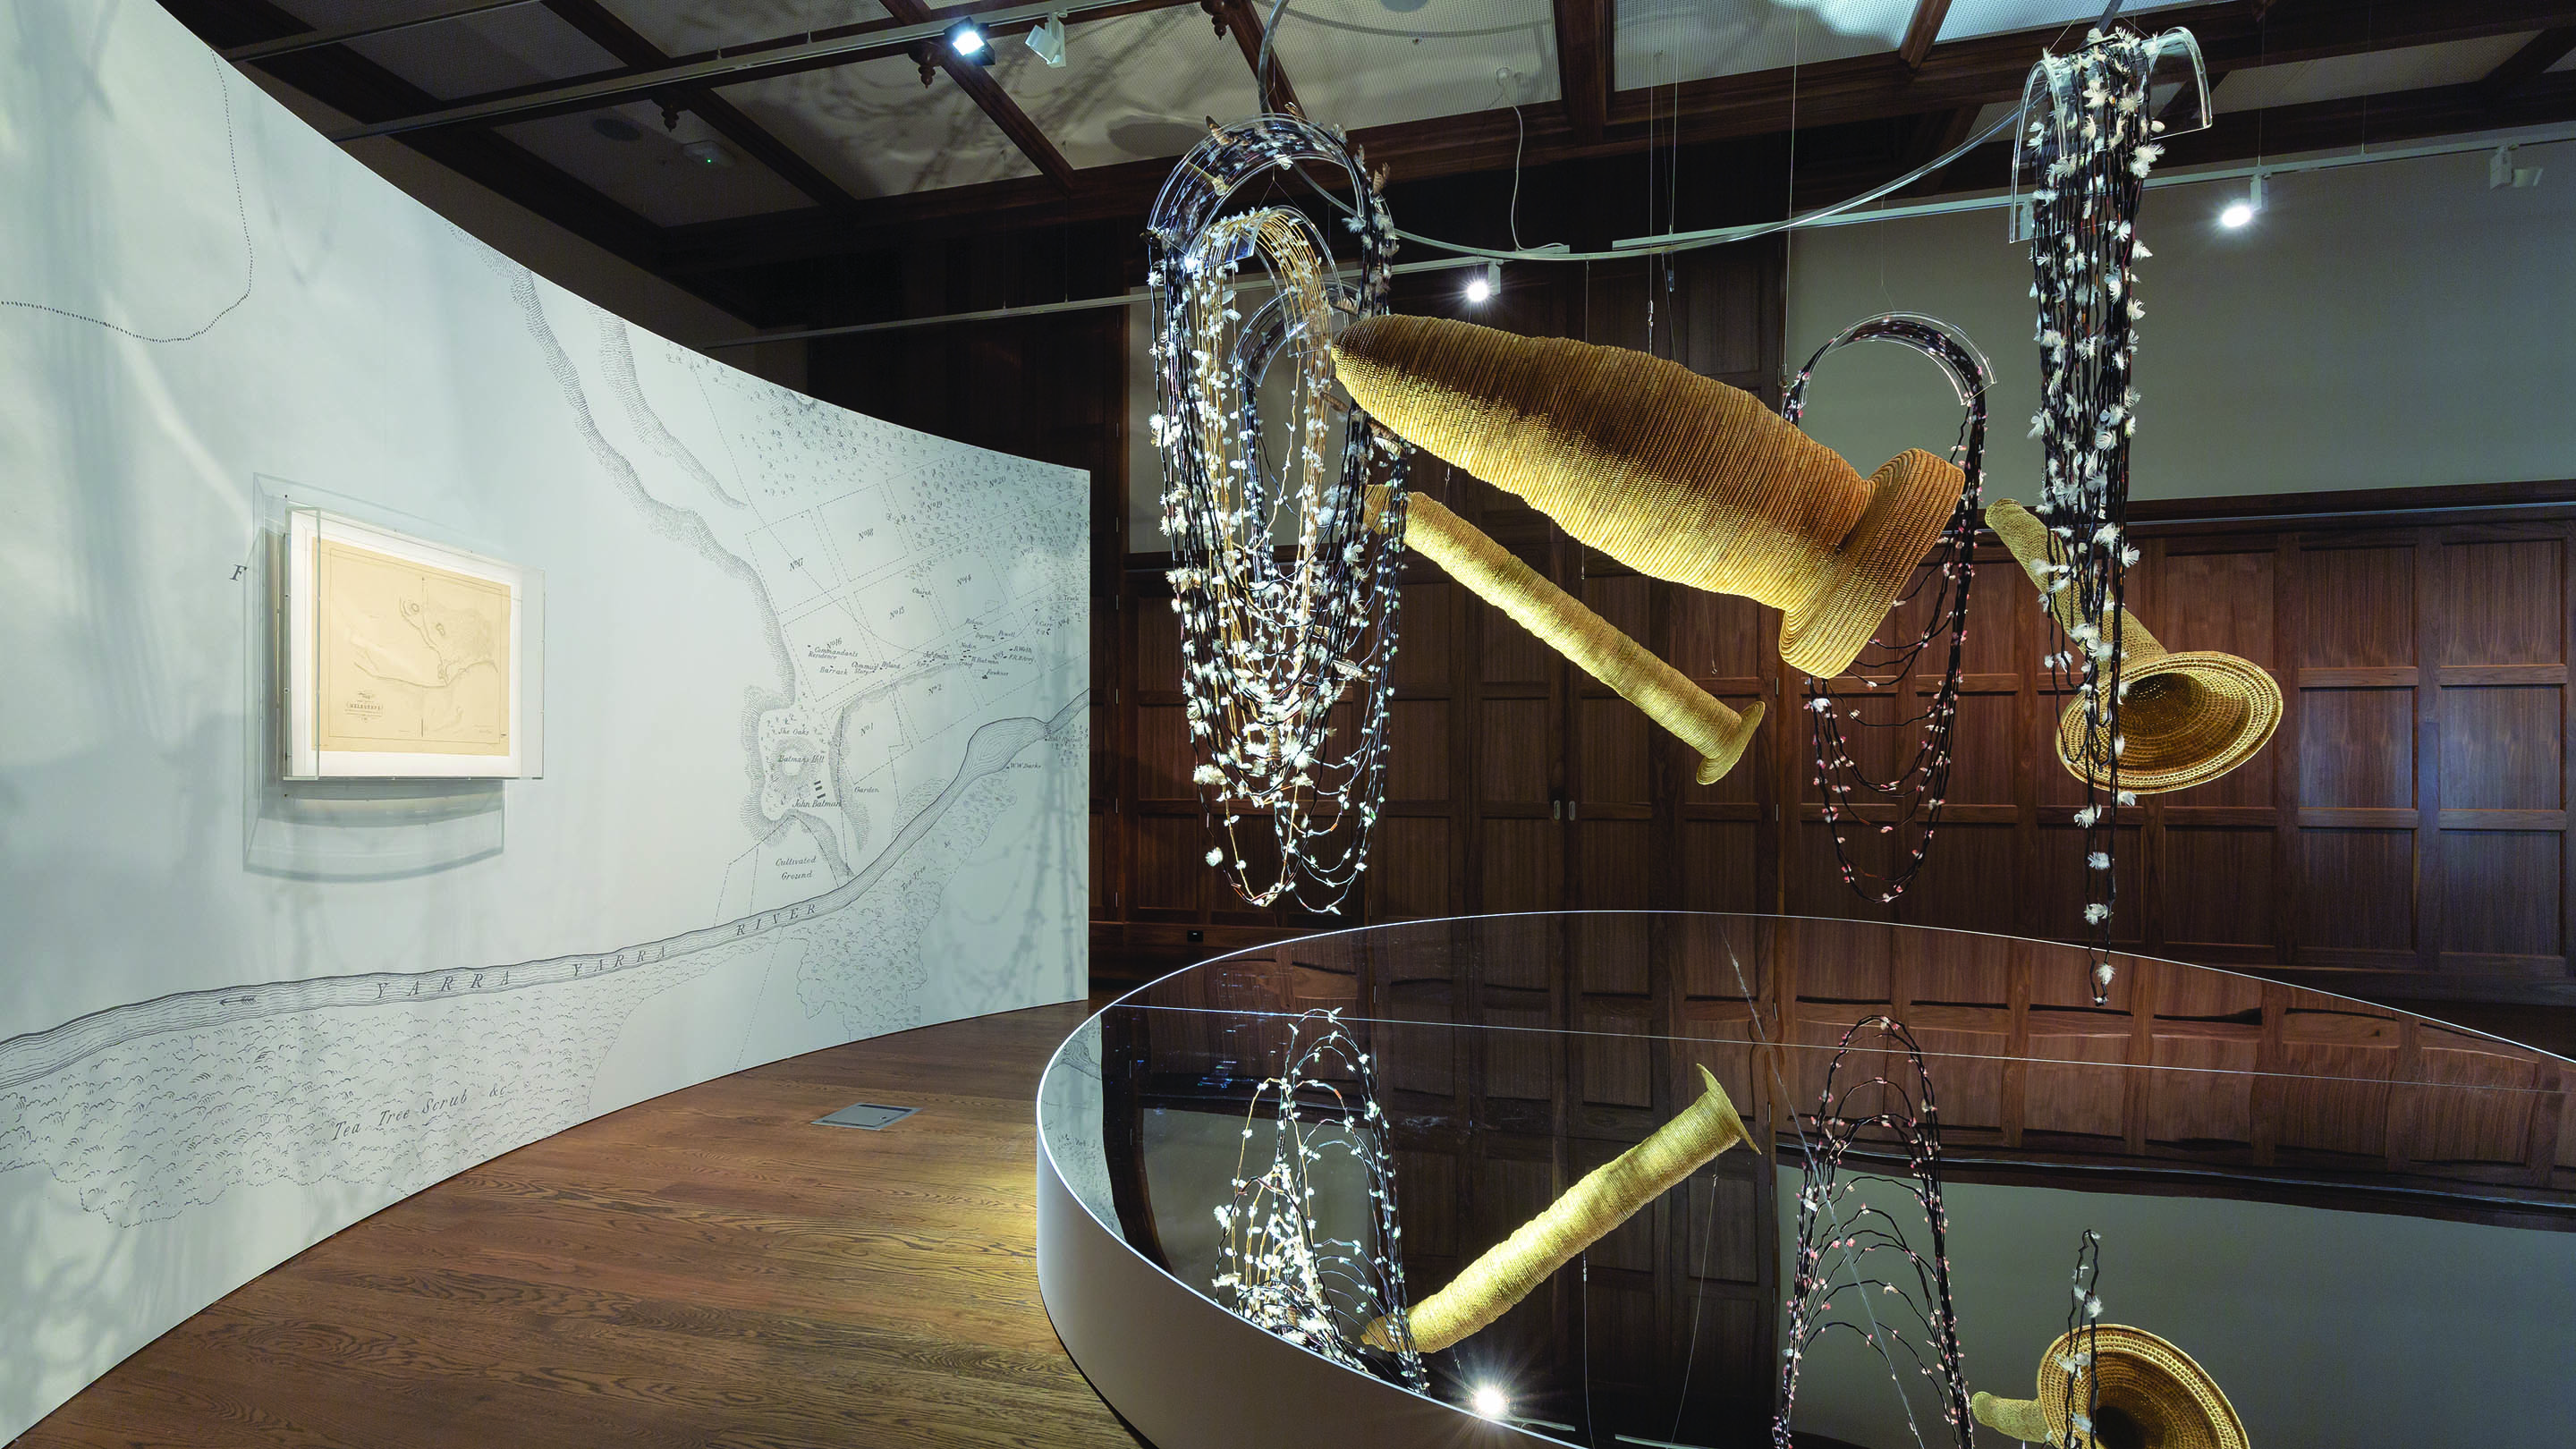 Installation view of the work Ancestral Memory by artist Maree Clarke